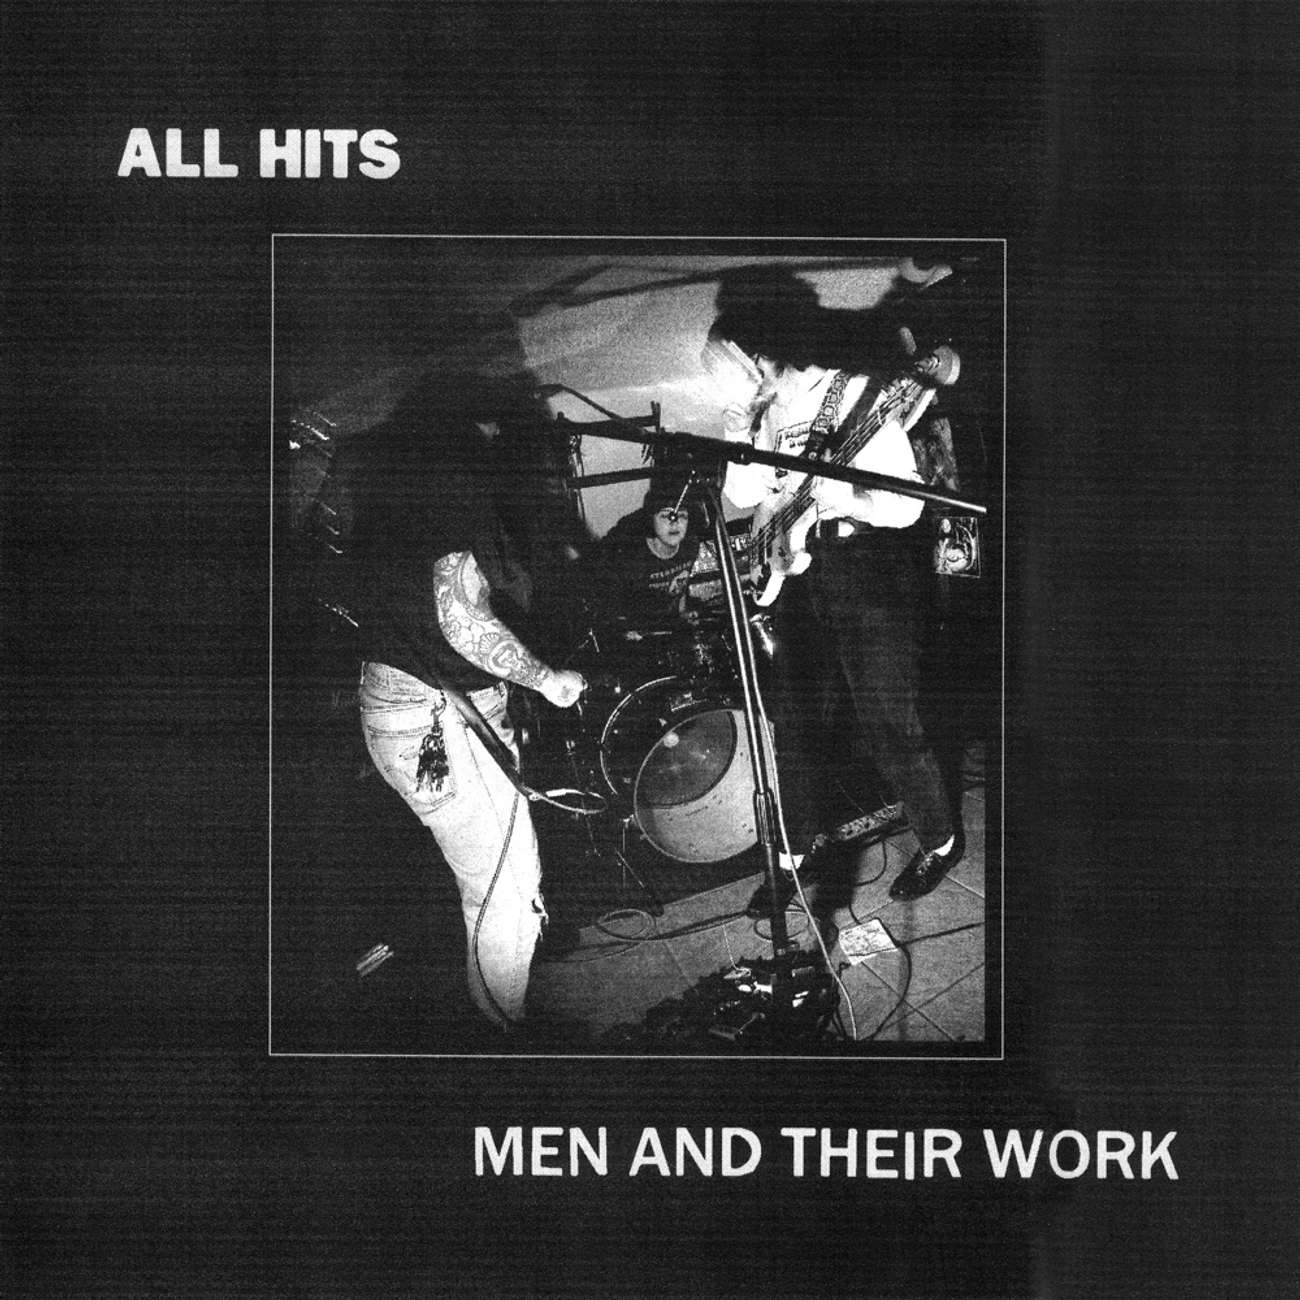 Men and Their Work by All Hits